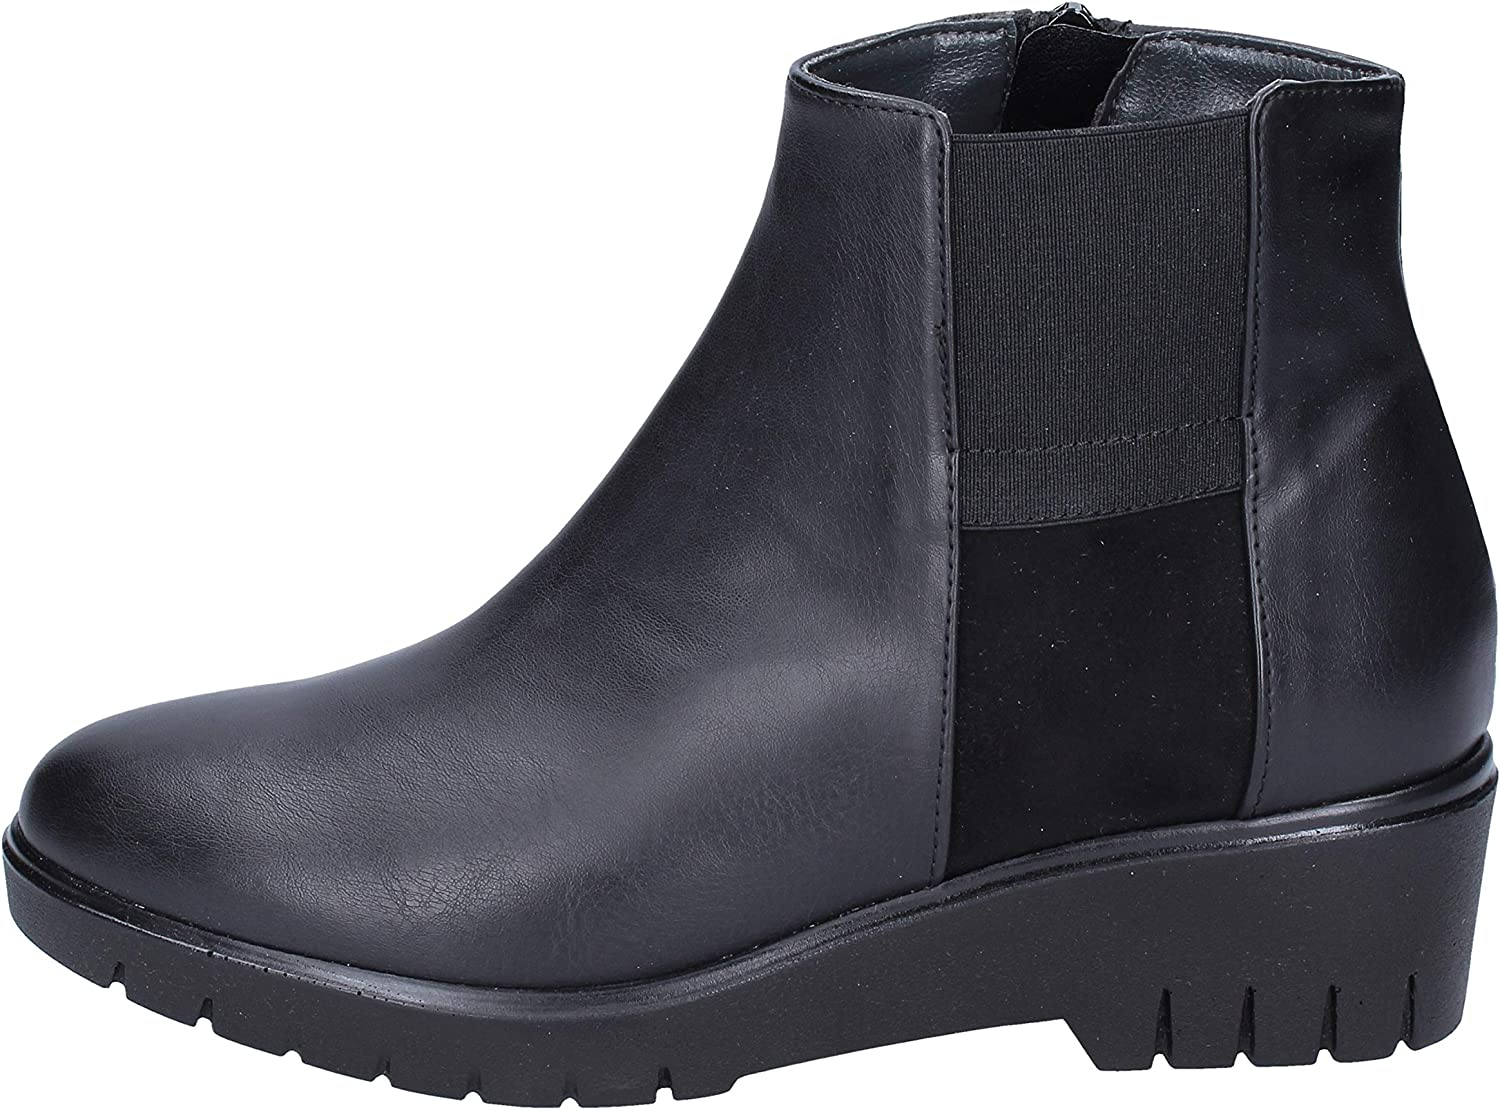 LADY SOFT Boots Womens Black